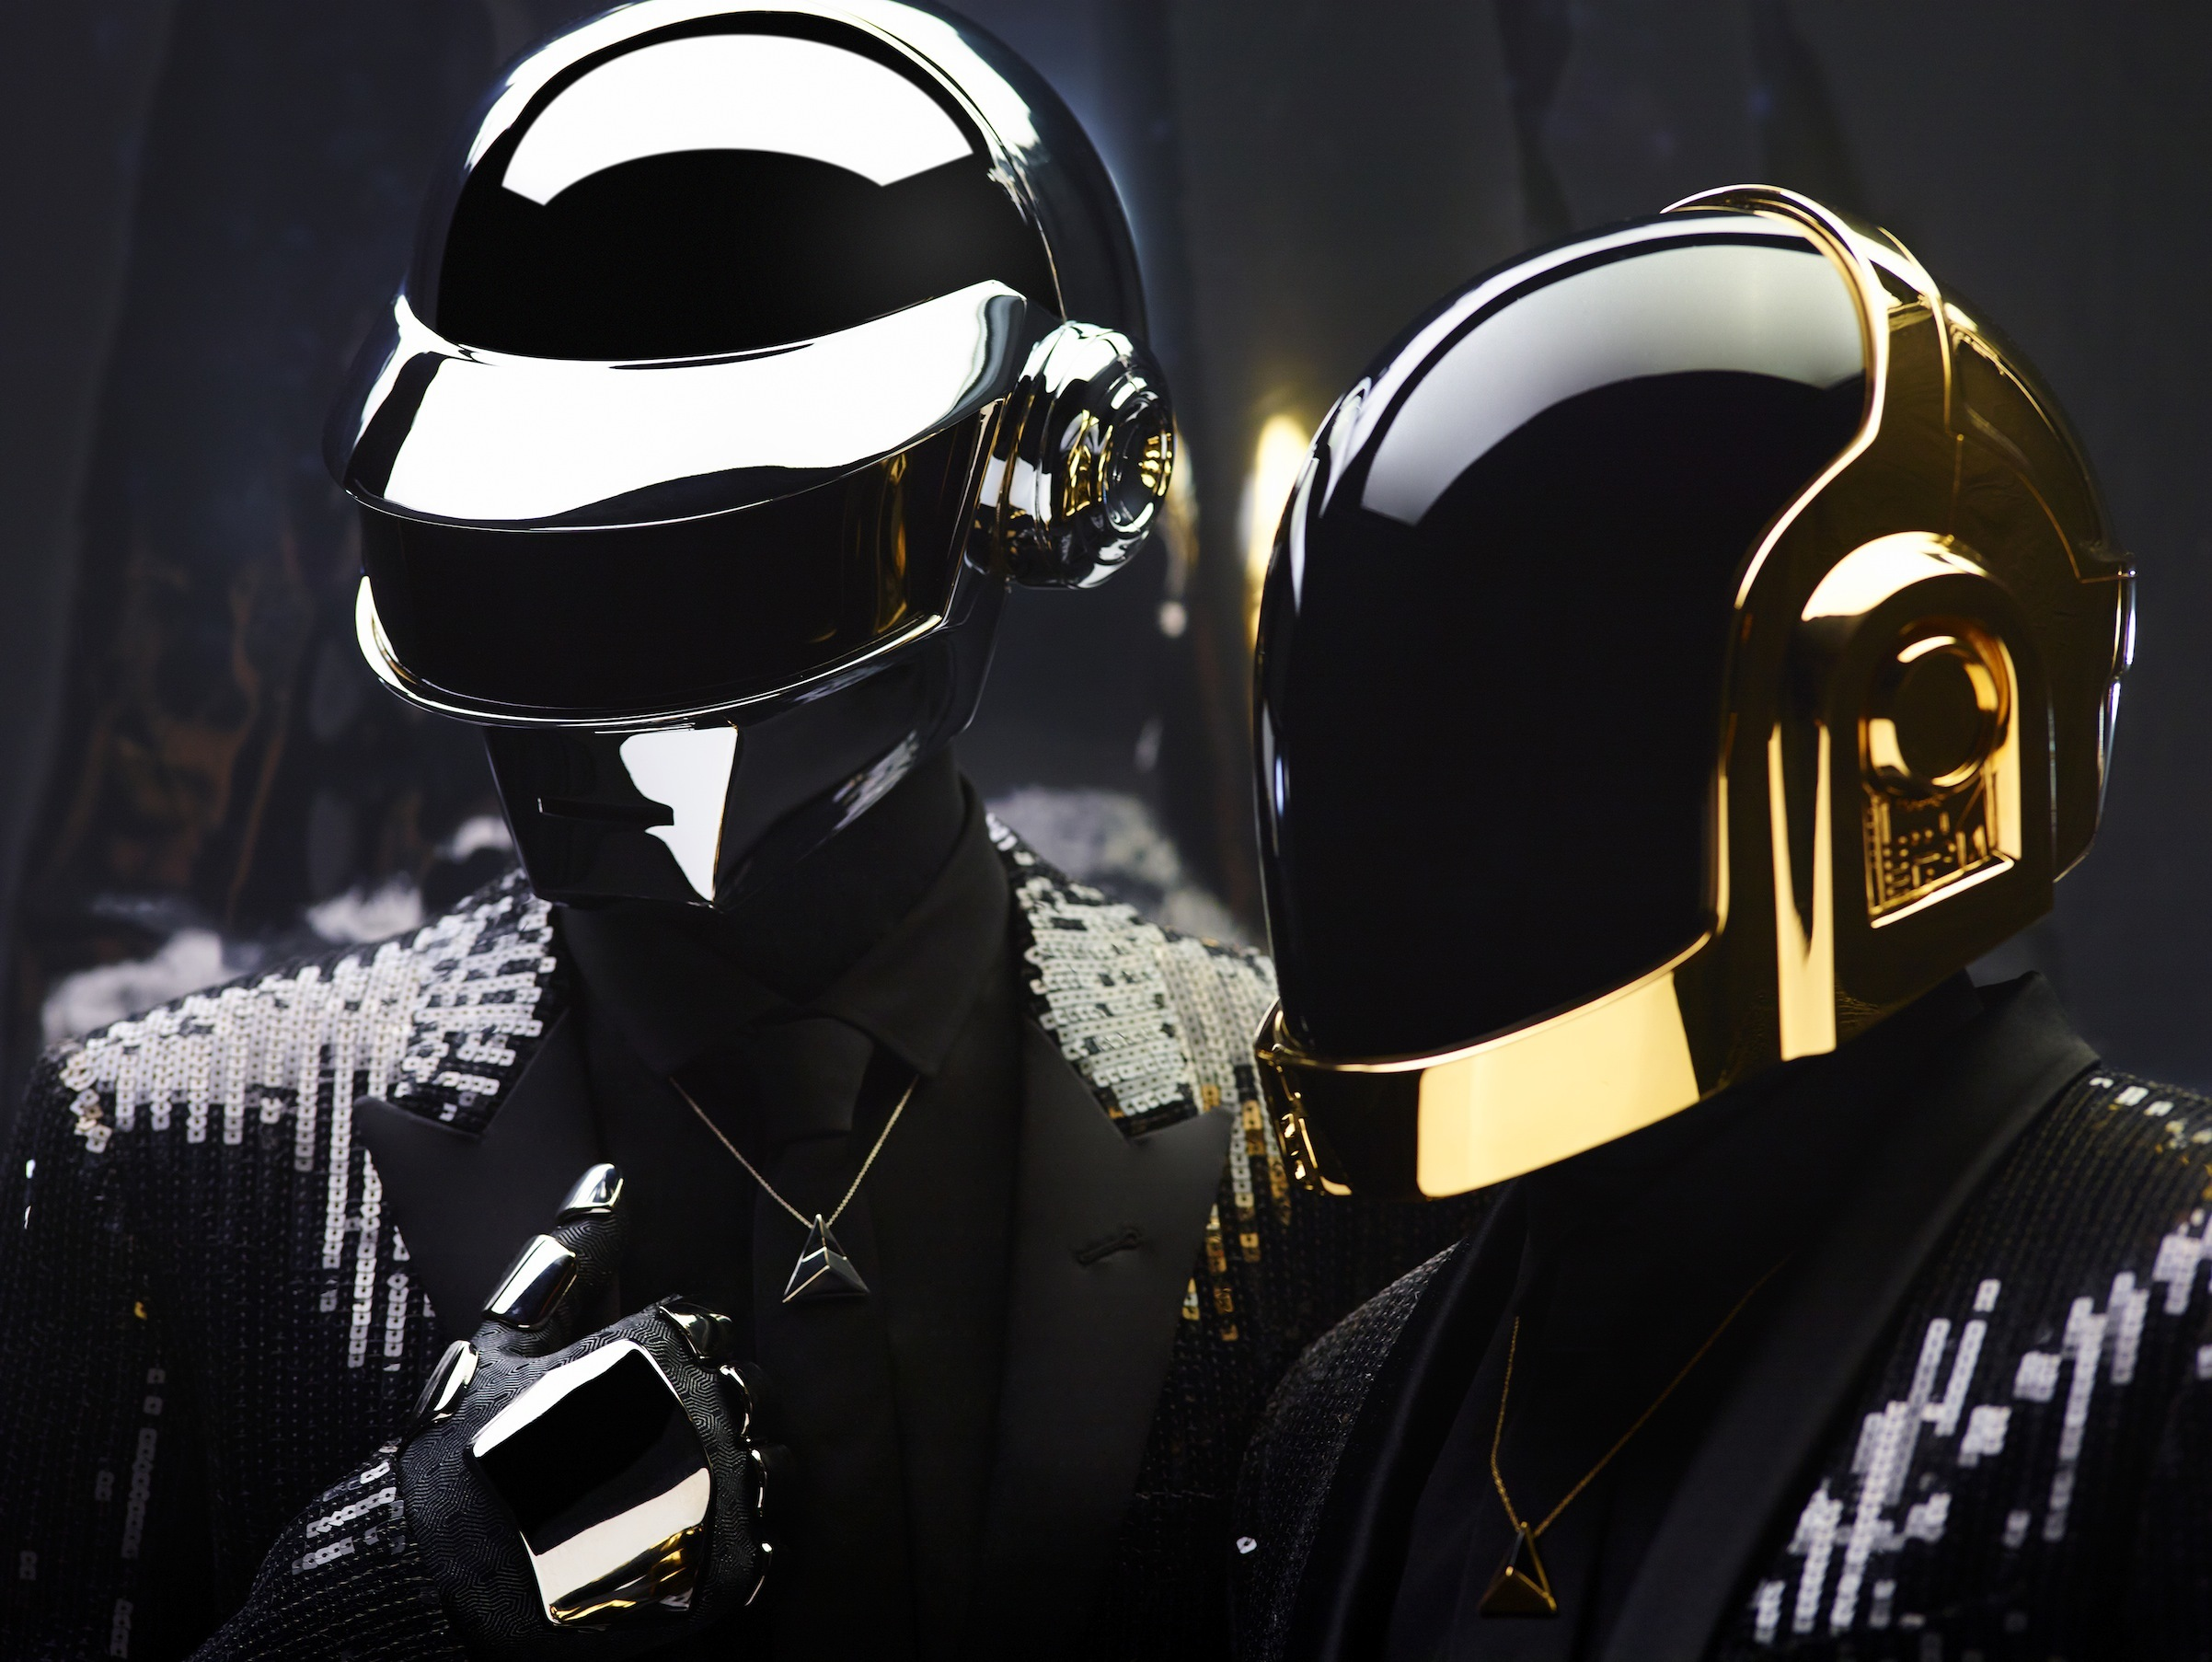 Check out these incredible  pictures from inside Daft Punk's LA pop-up store